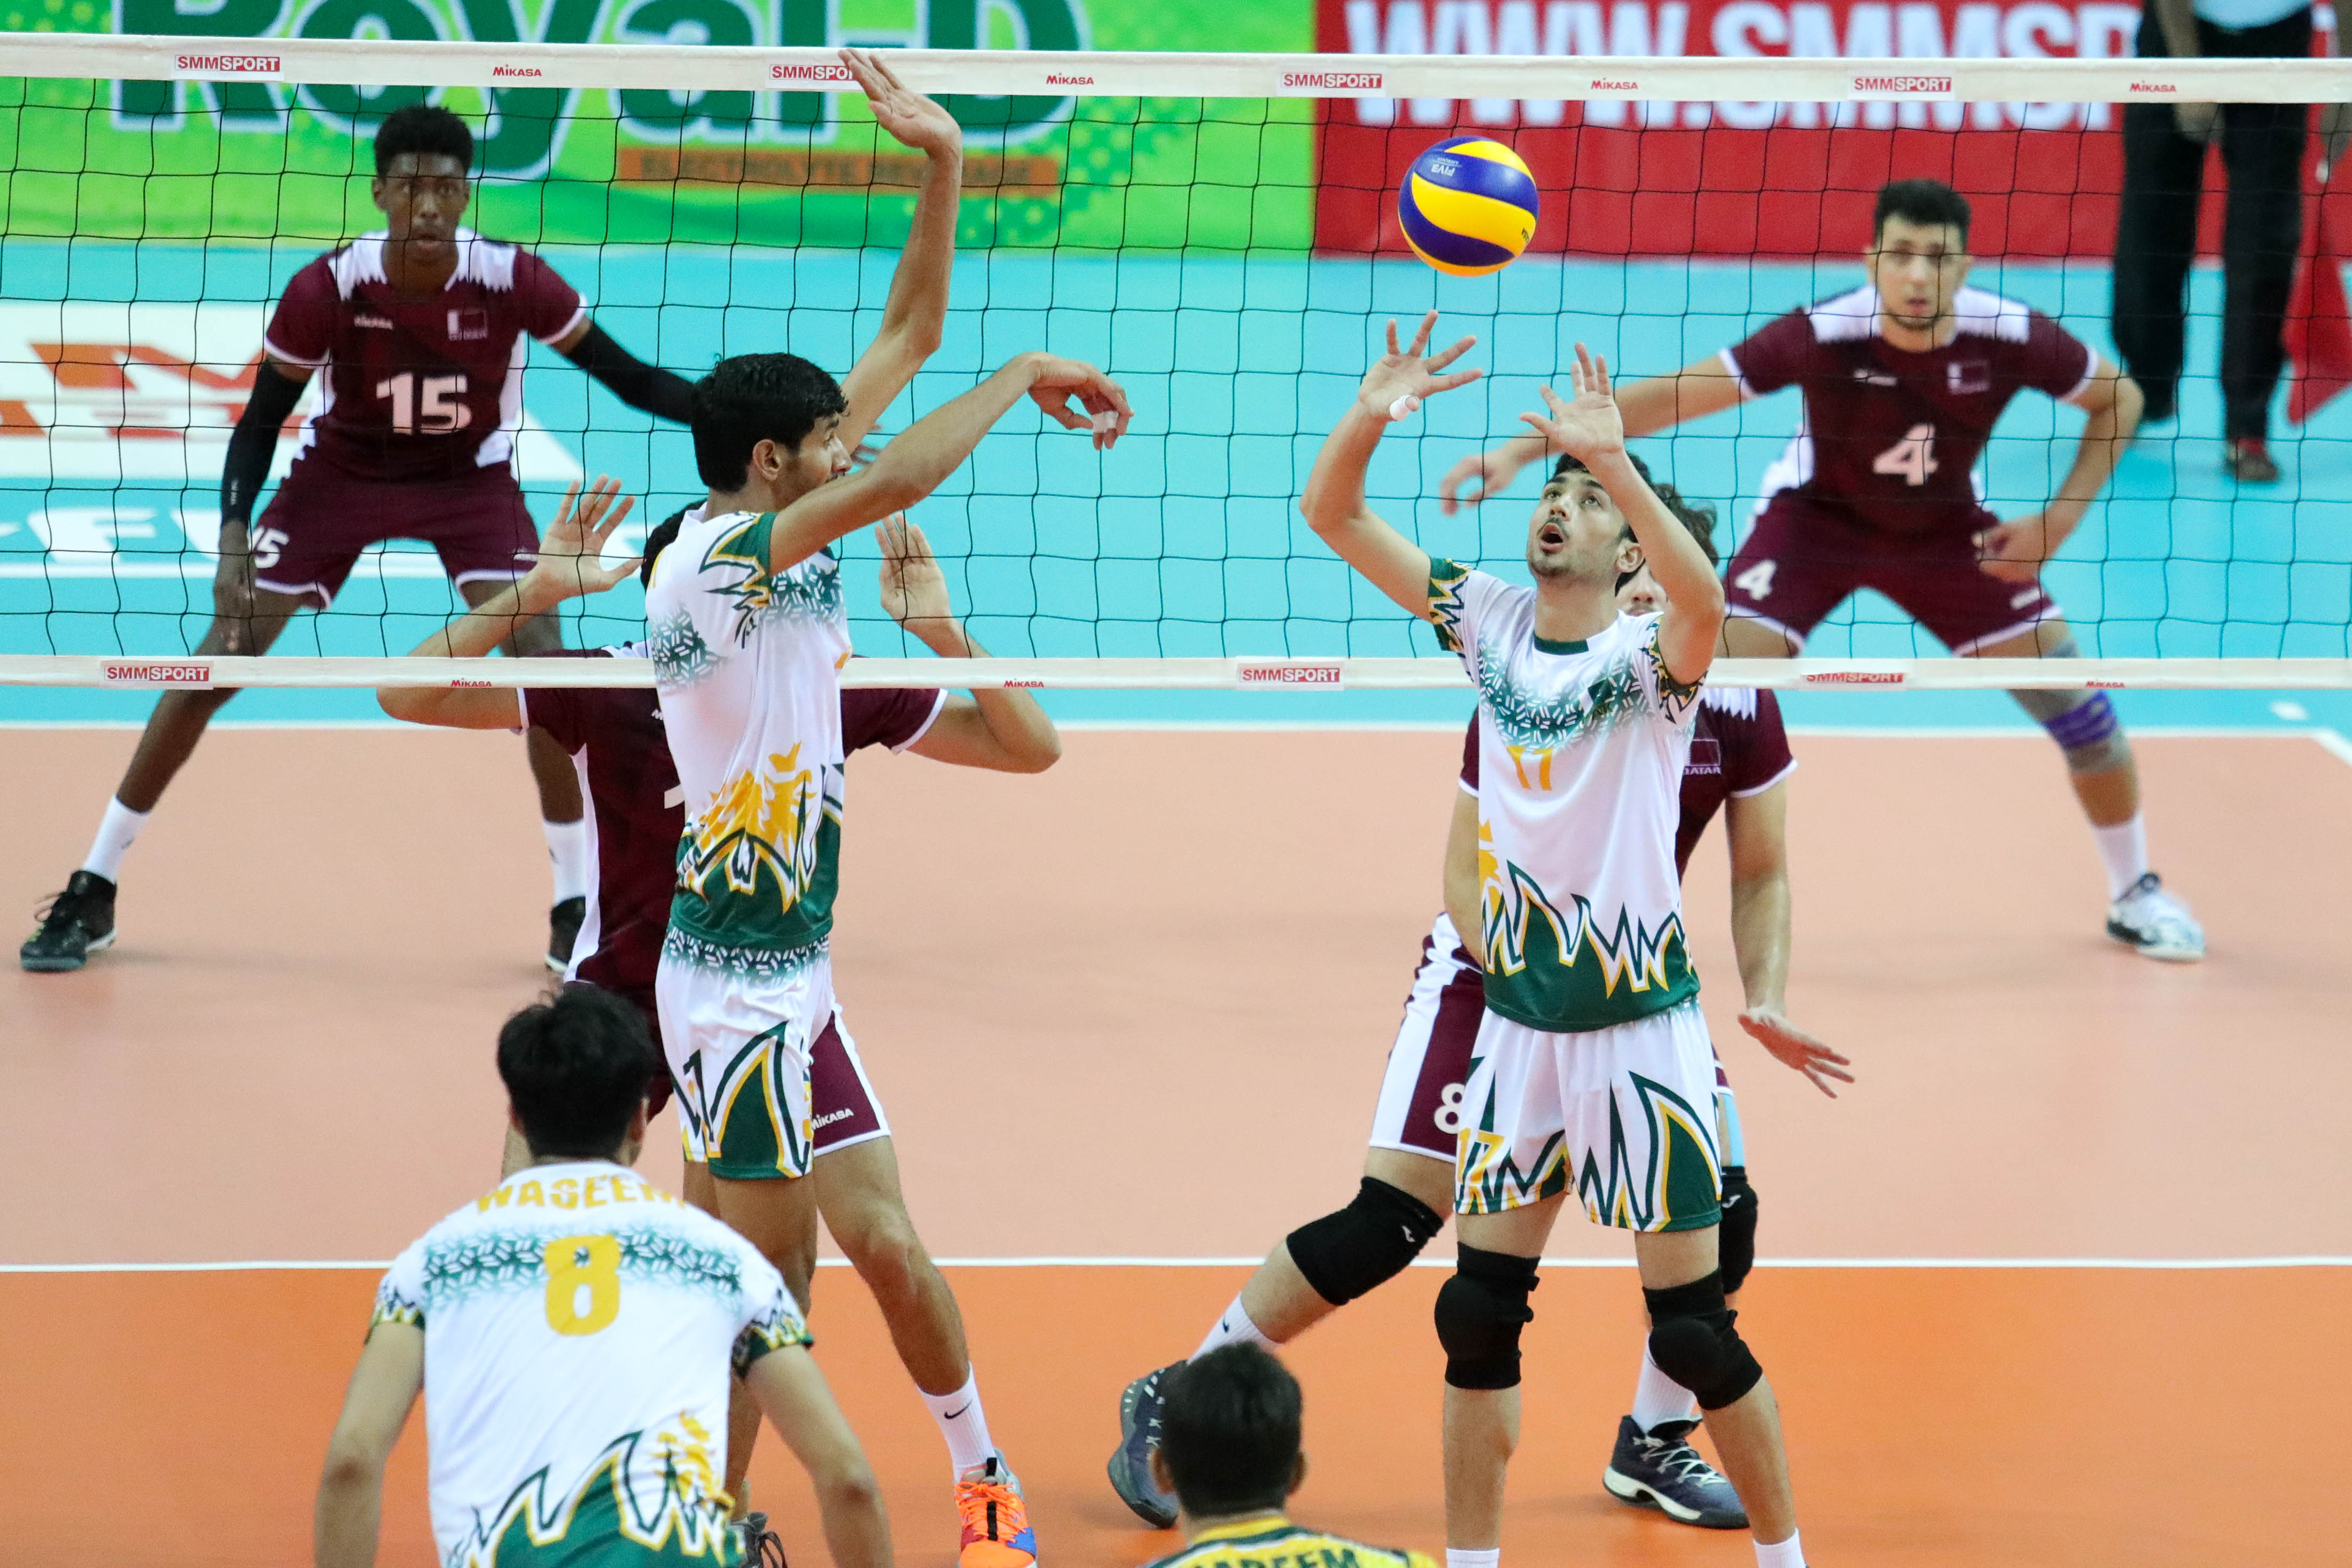 PAKISTAN PULL OFF CONFIDENT 3-0 VICTORY AGAINST QATAR